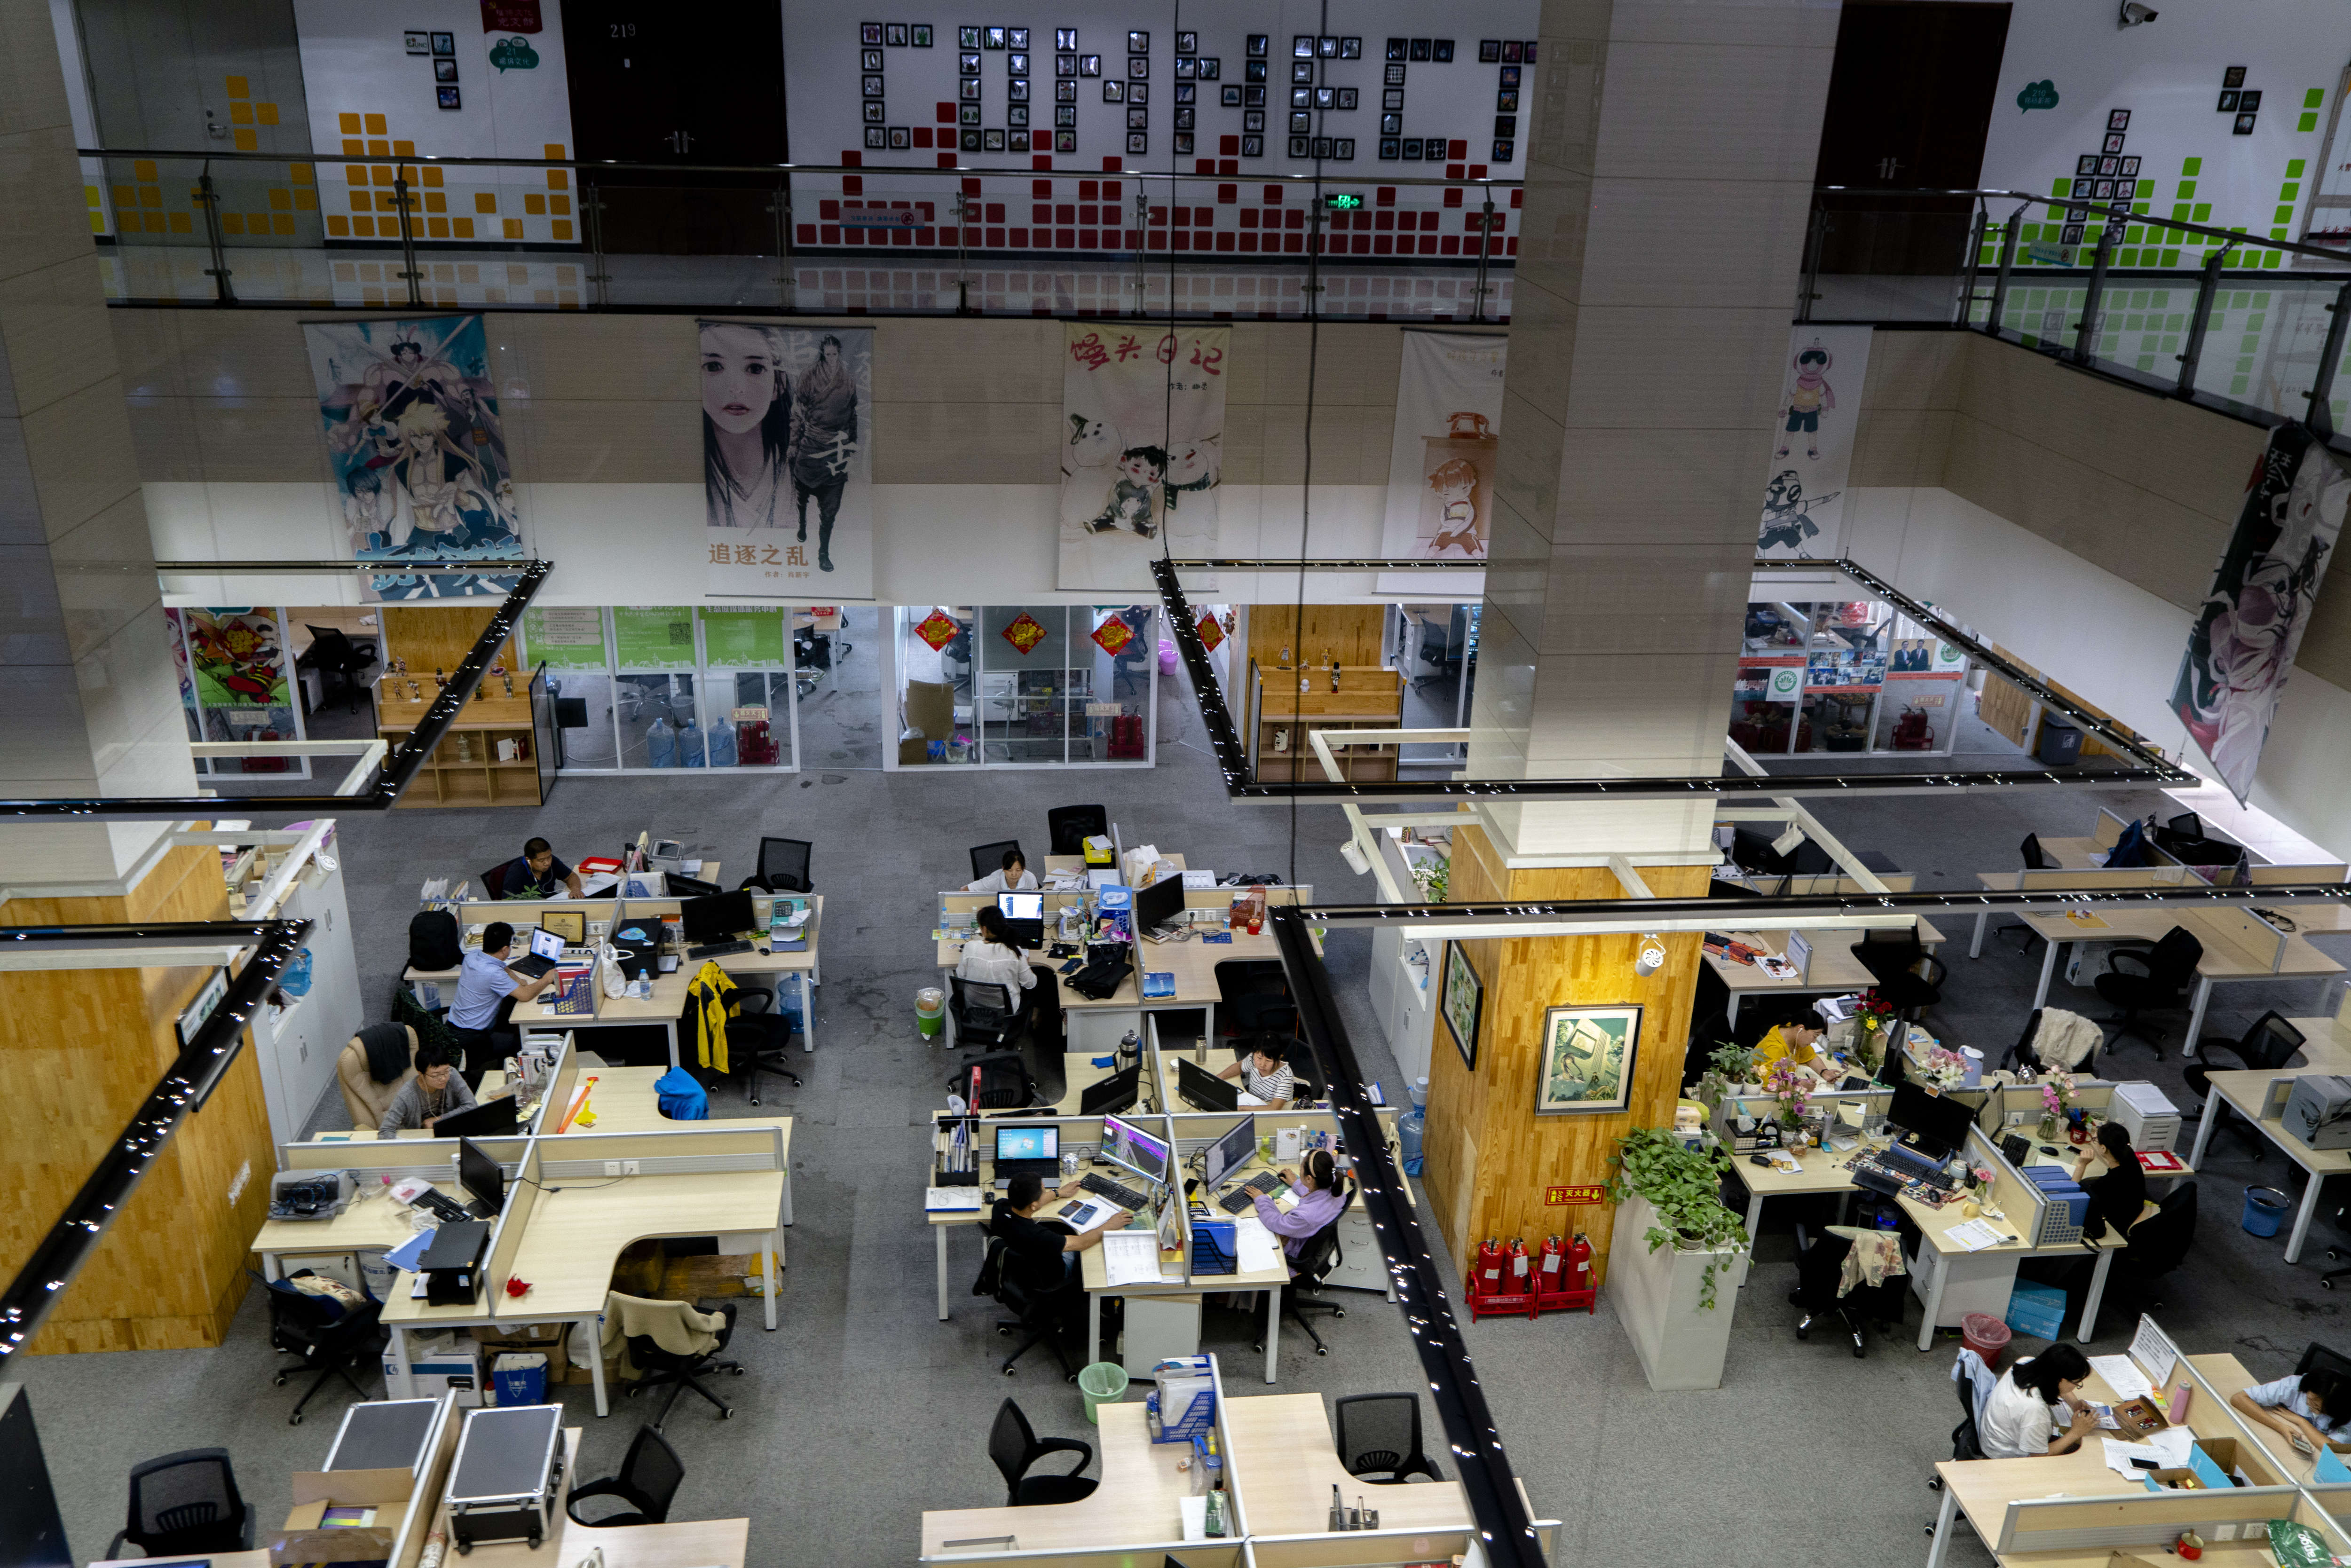 Young people are working in an open office space, which is a